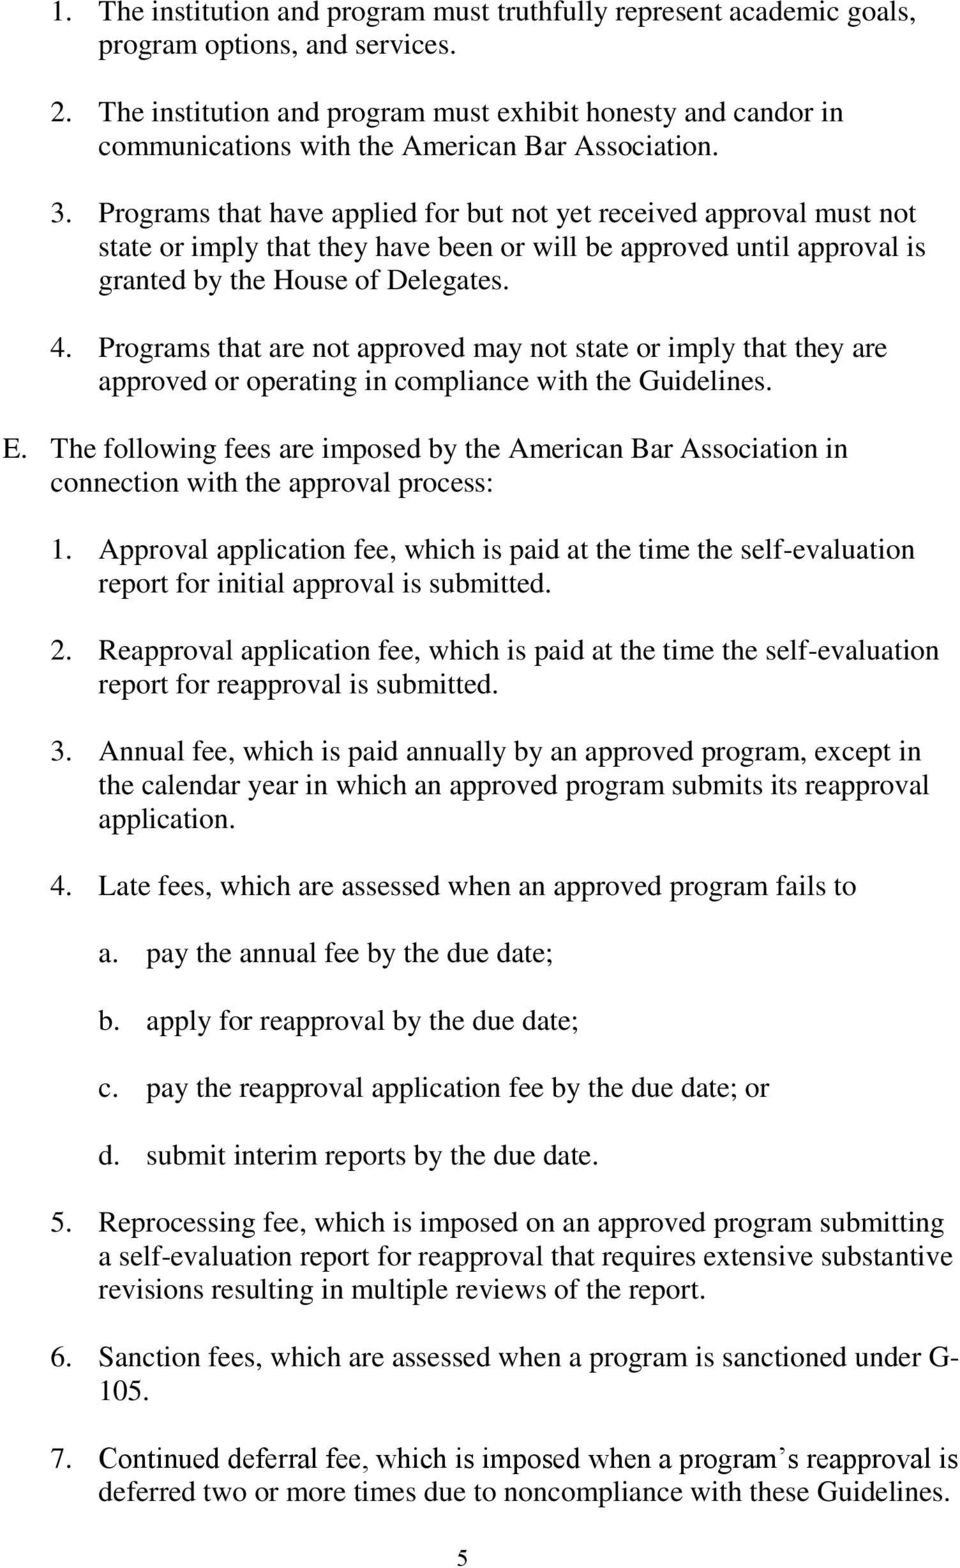 Programs that have applied for but not yet received approval must not state or imply that they have been or will be approved until approval is granted by the House of Delegates. 4.